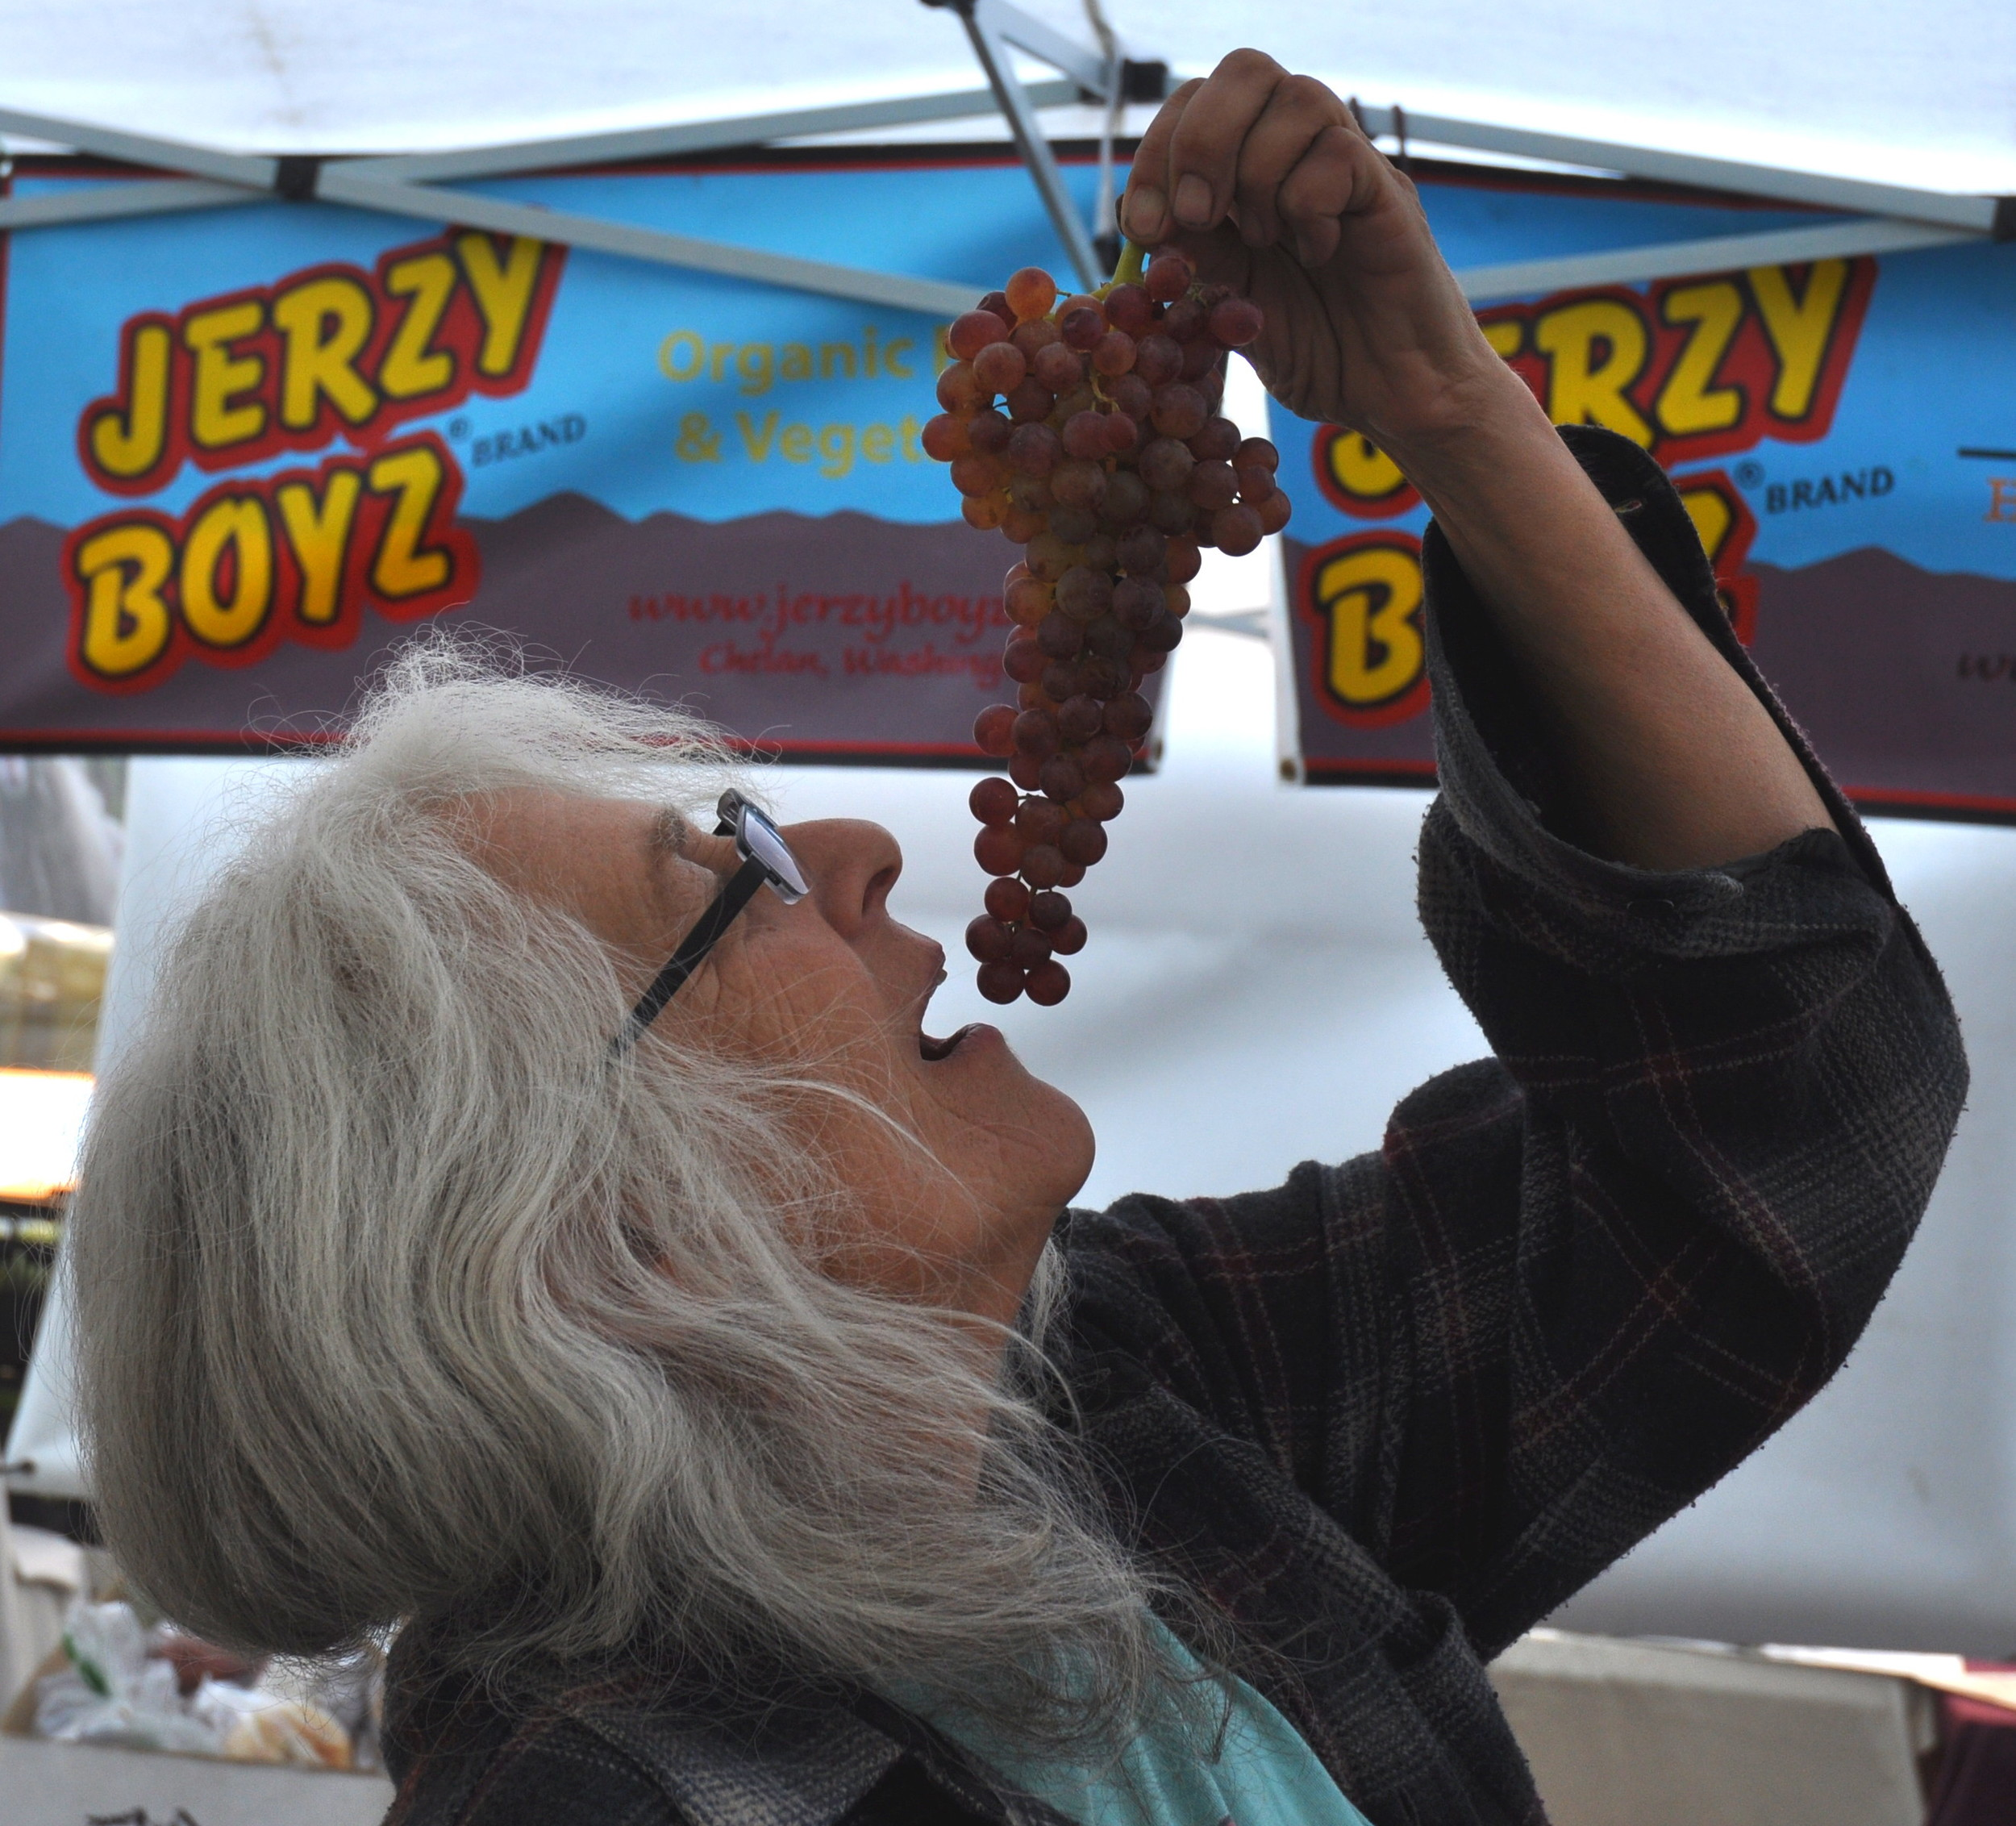 Wynne from Jerzy Boyz at Ballard Farmers Market. Copyright Zachary D. Lyons.